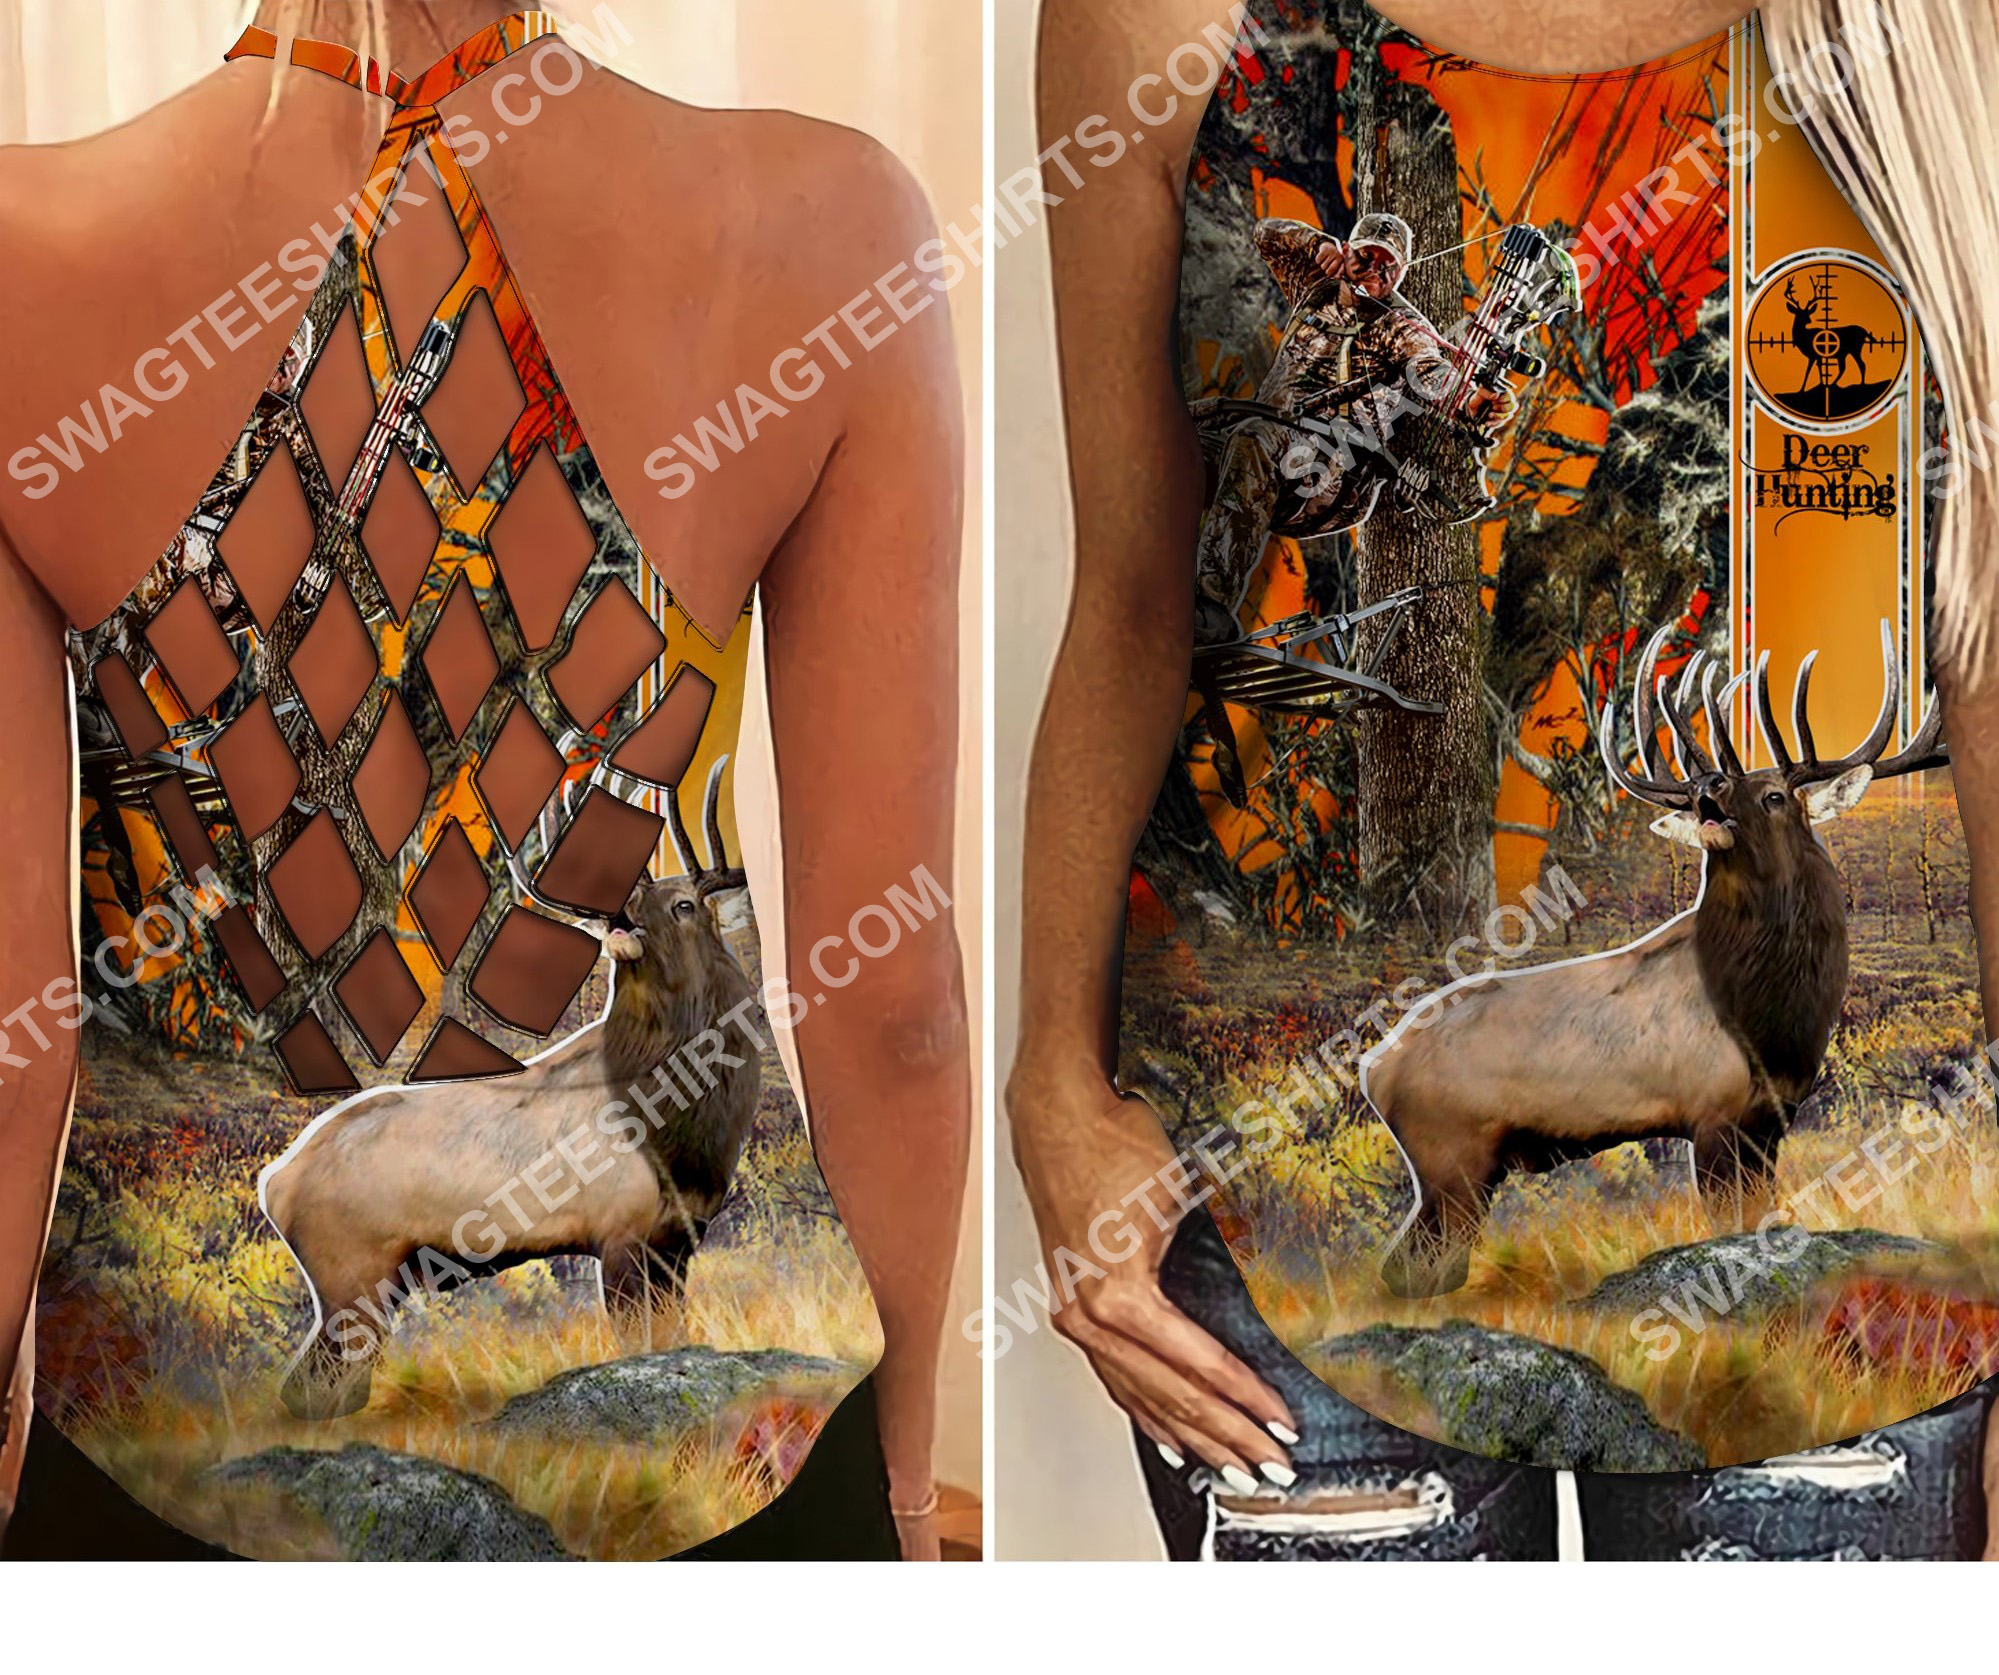 deer hunting in forest all over printed criss-cross tank top 2 - Copy (2)